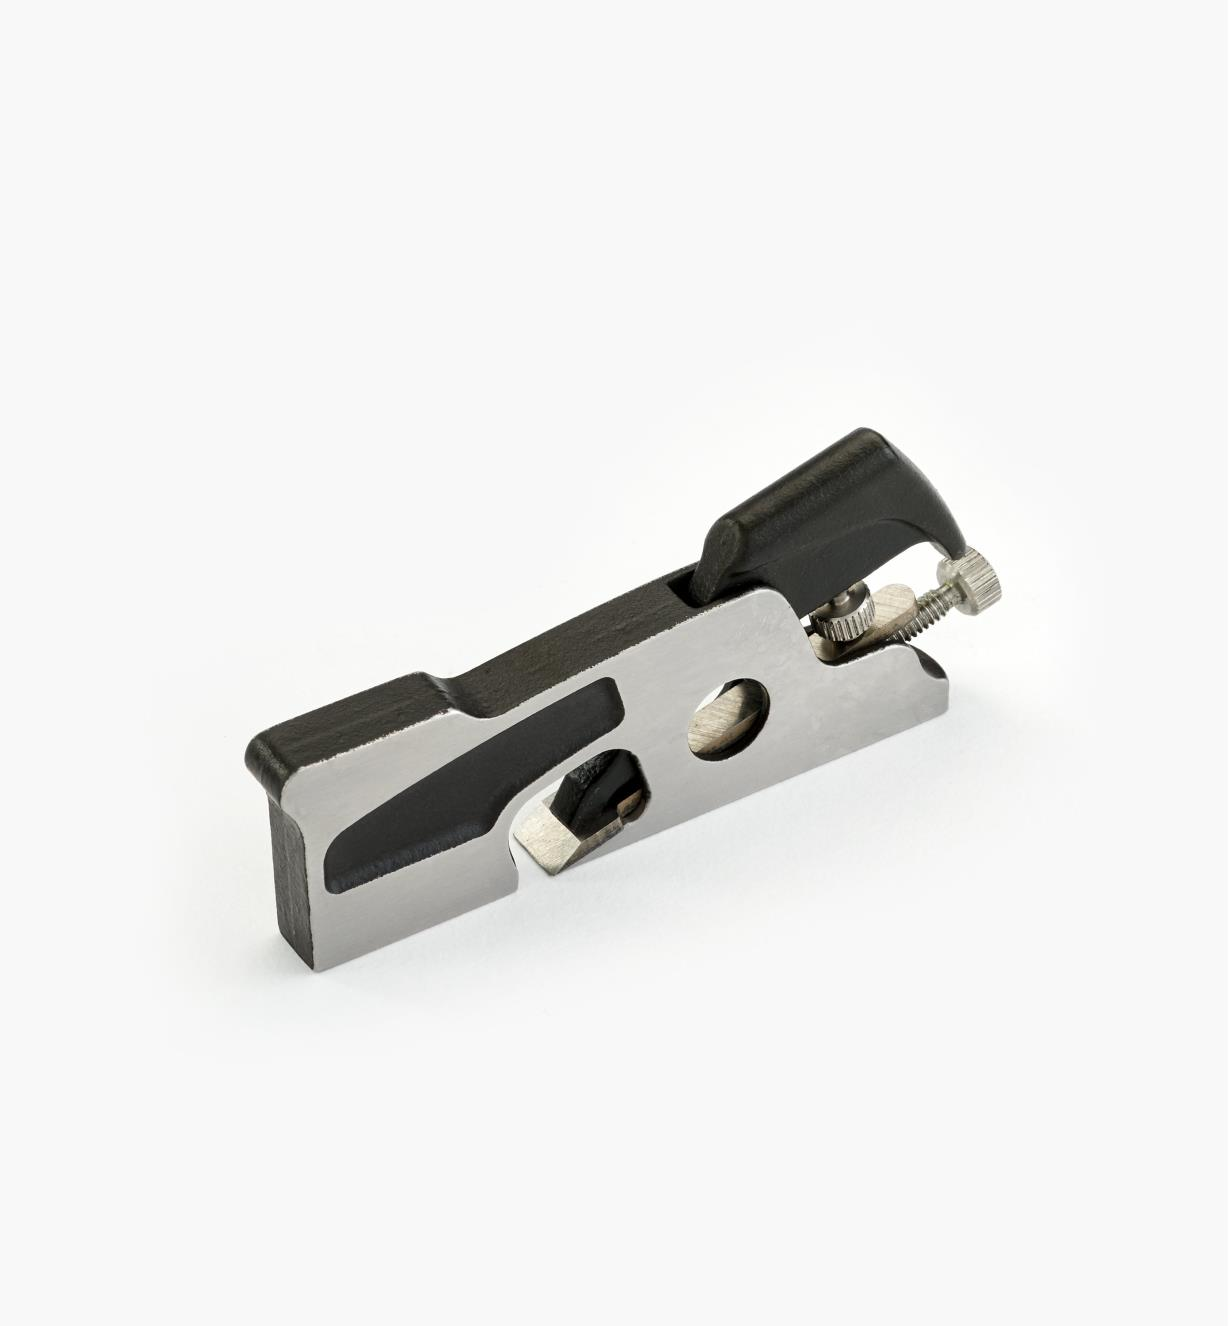 05P8001 - Veritas Miniature Shoulder Plane